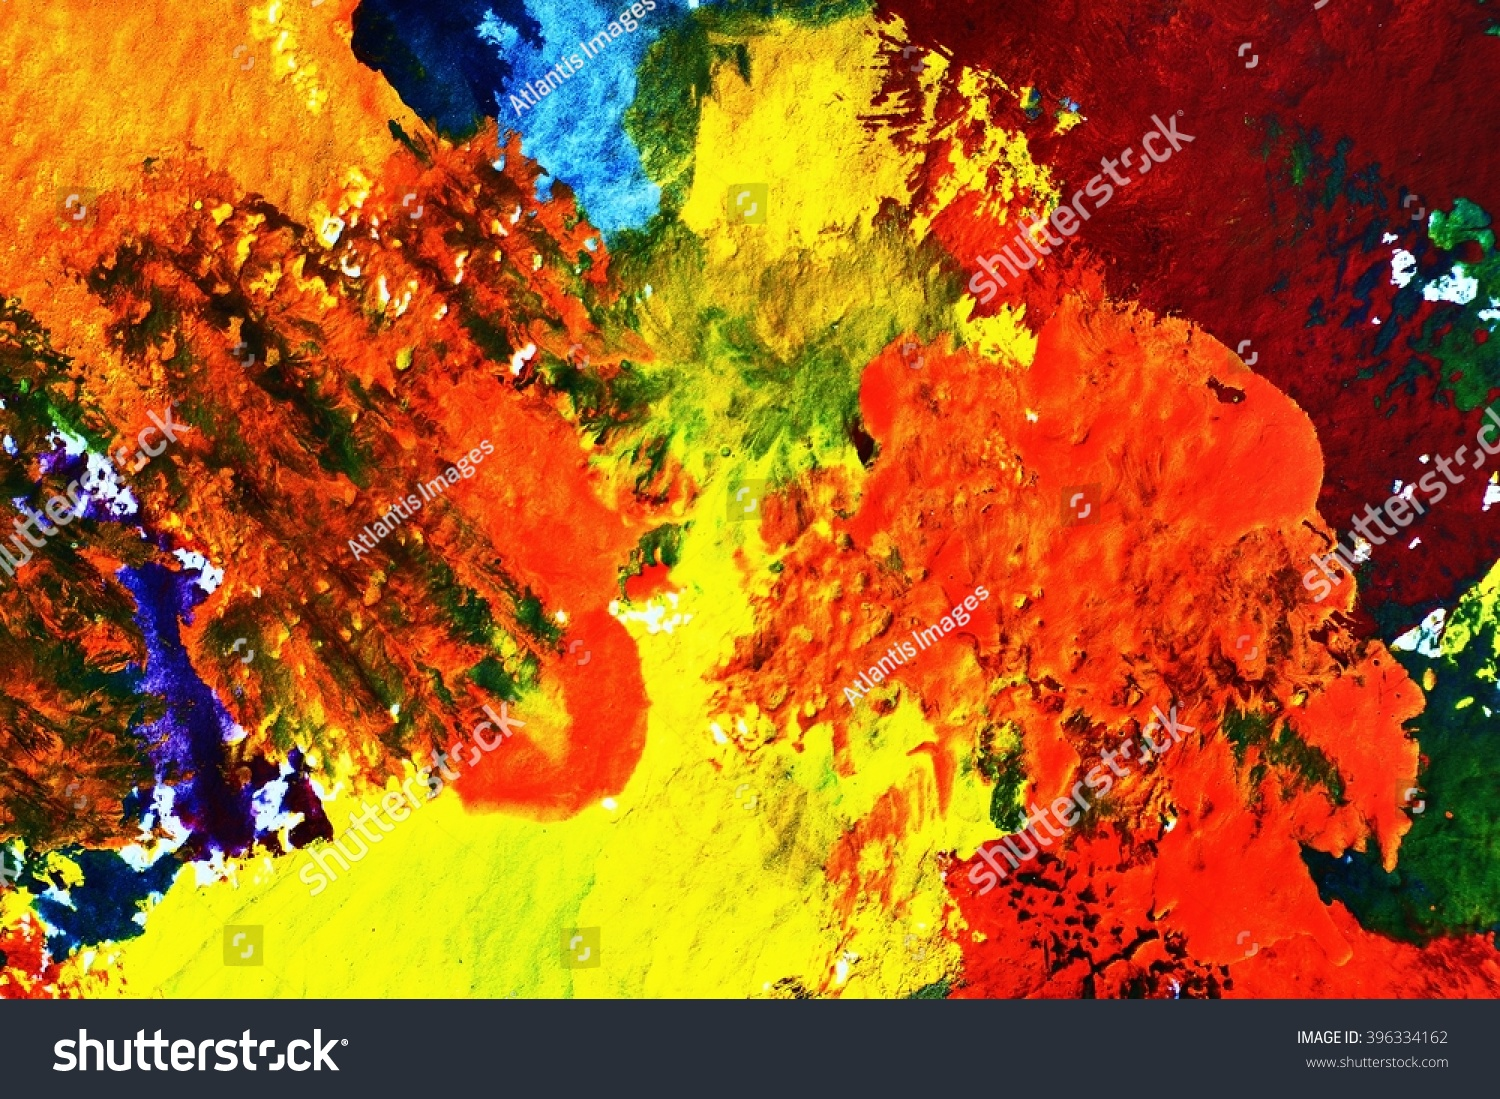 Abstract Of Poster Color Painting On Stock Photo 396334162 Avopix Com